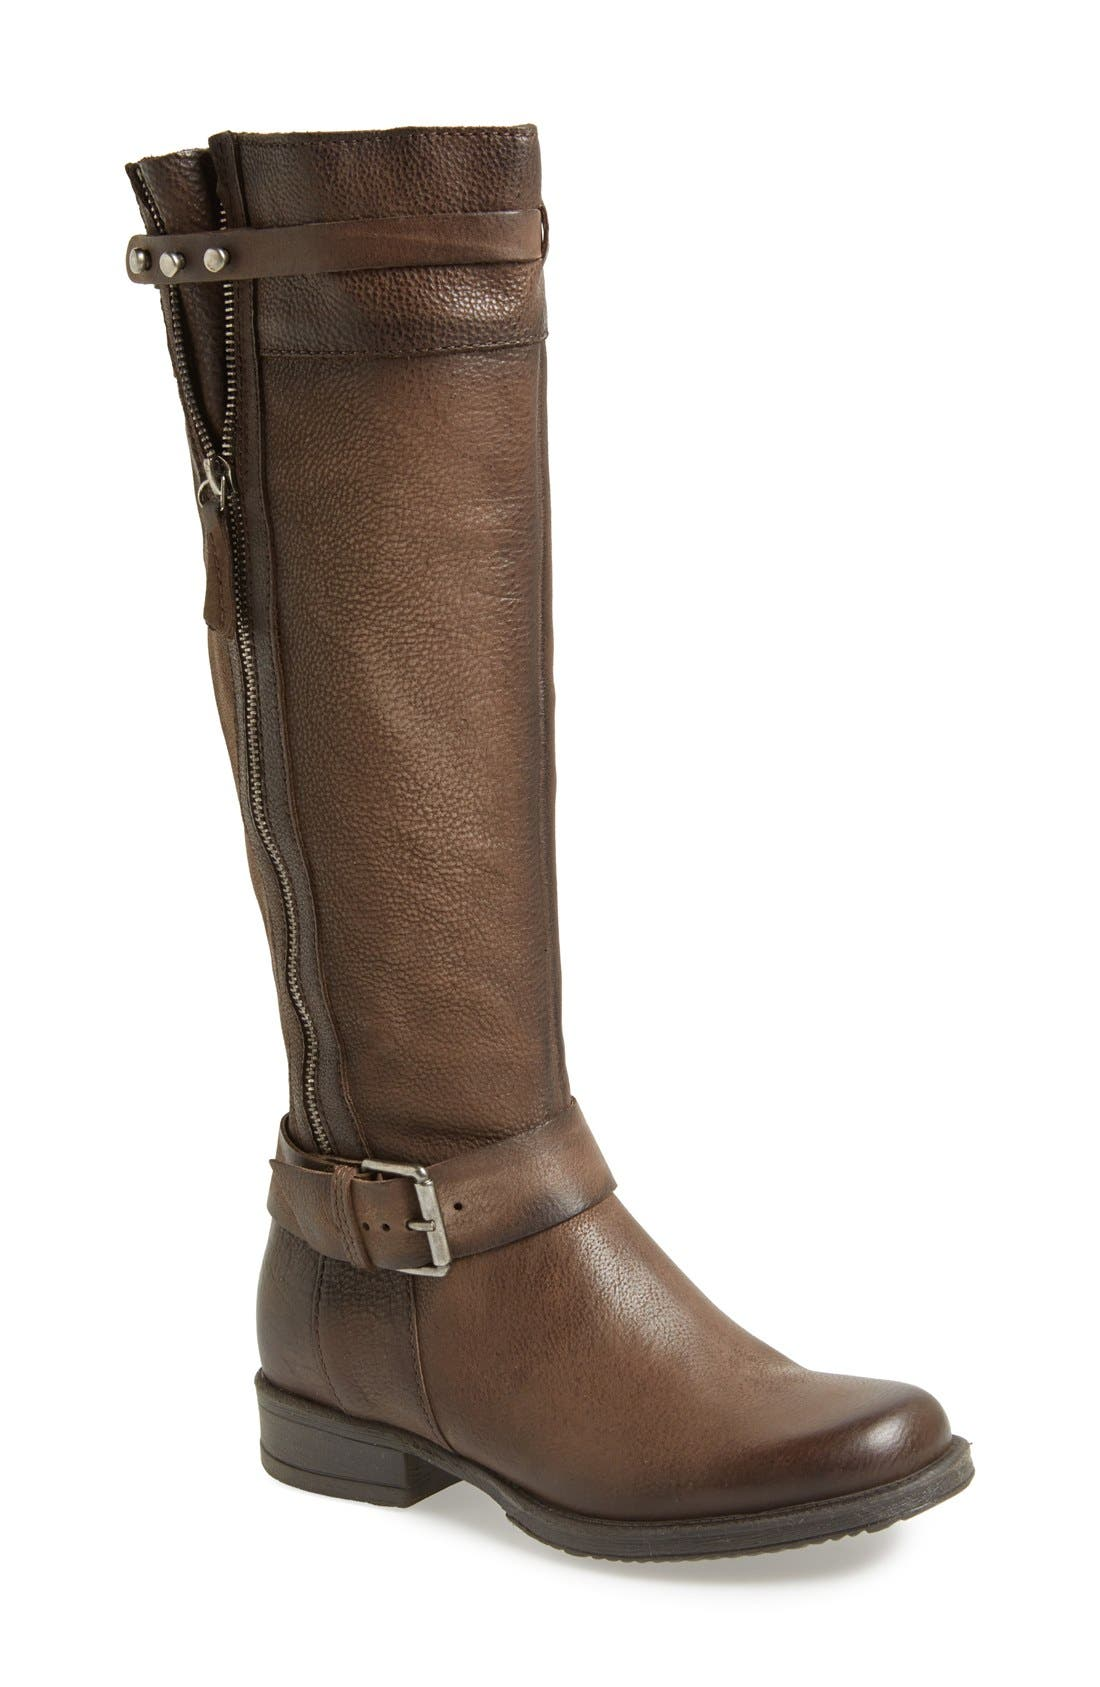 Main Image - Miz Mooz 'Nicola' Riding Boot (Women)